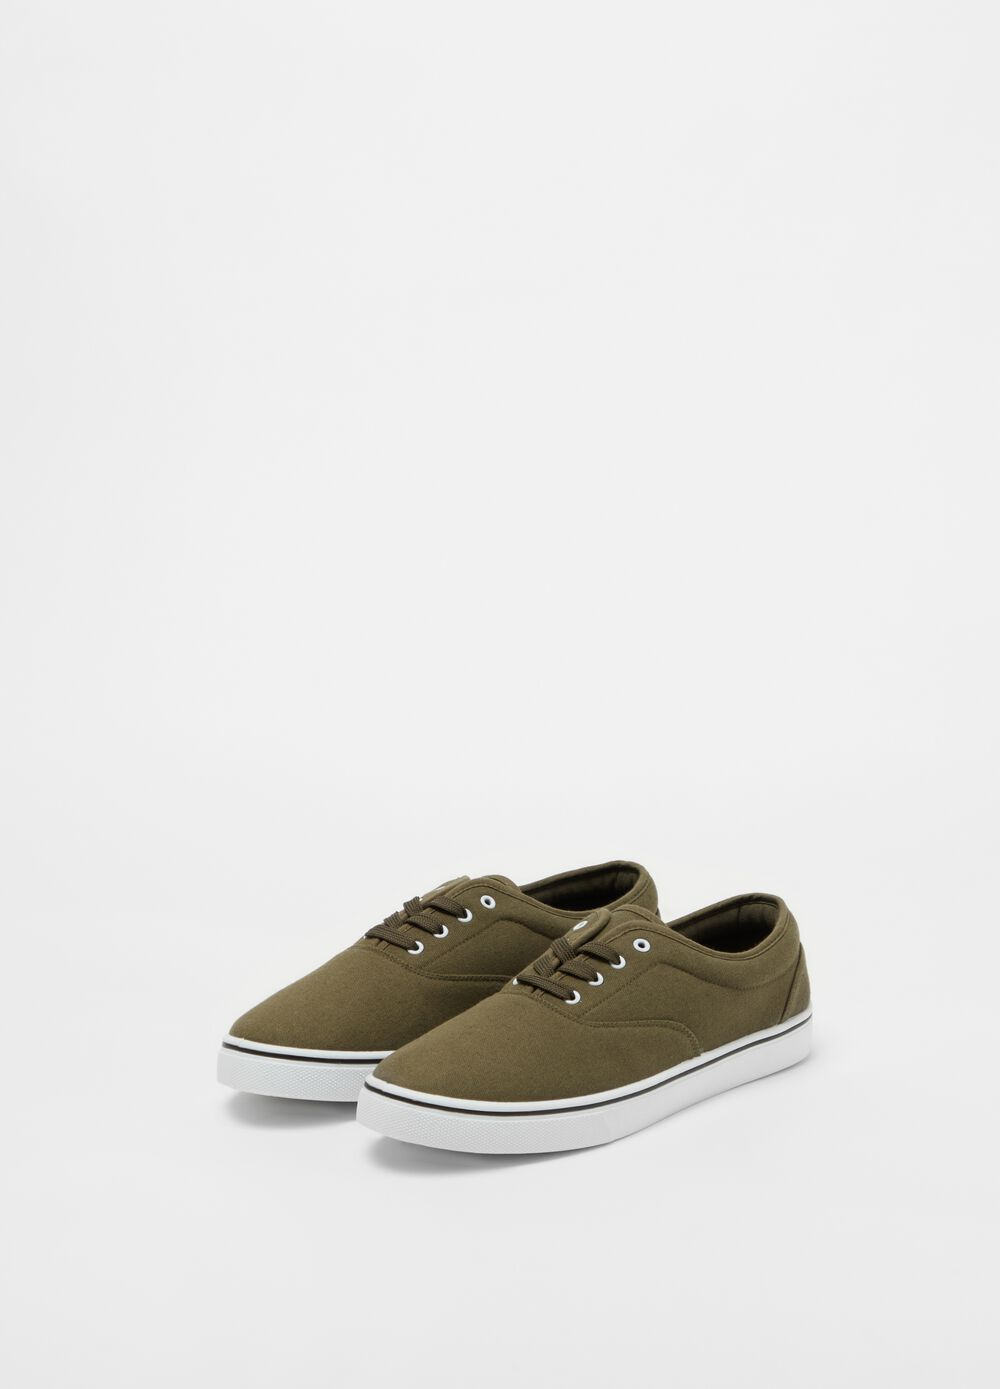 Cotton lace-up sneakers